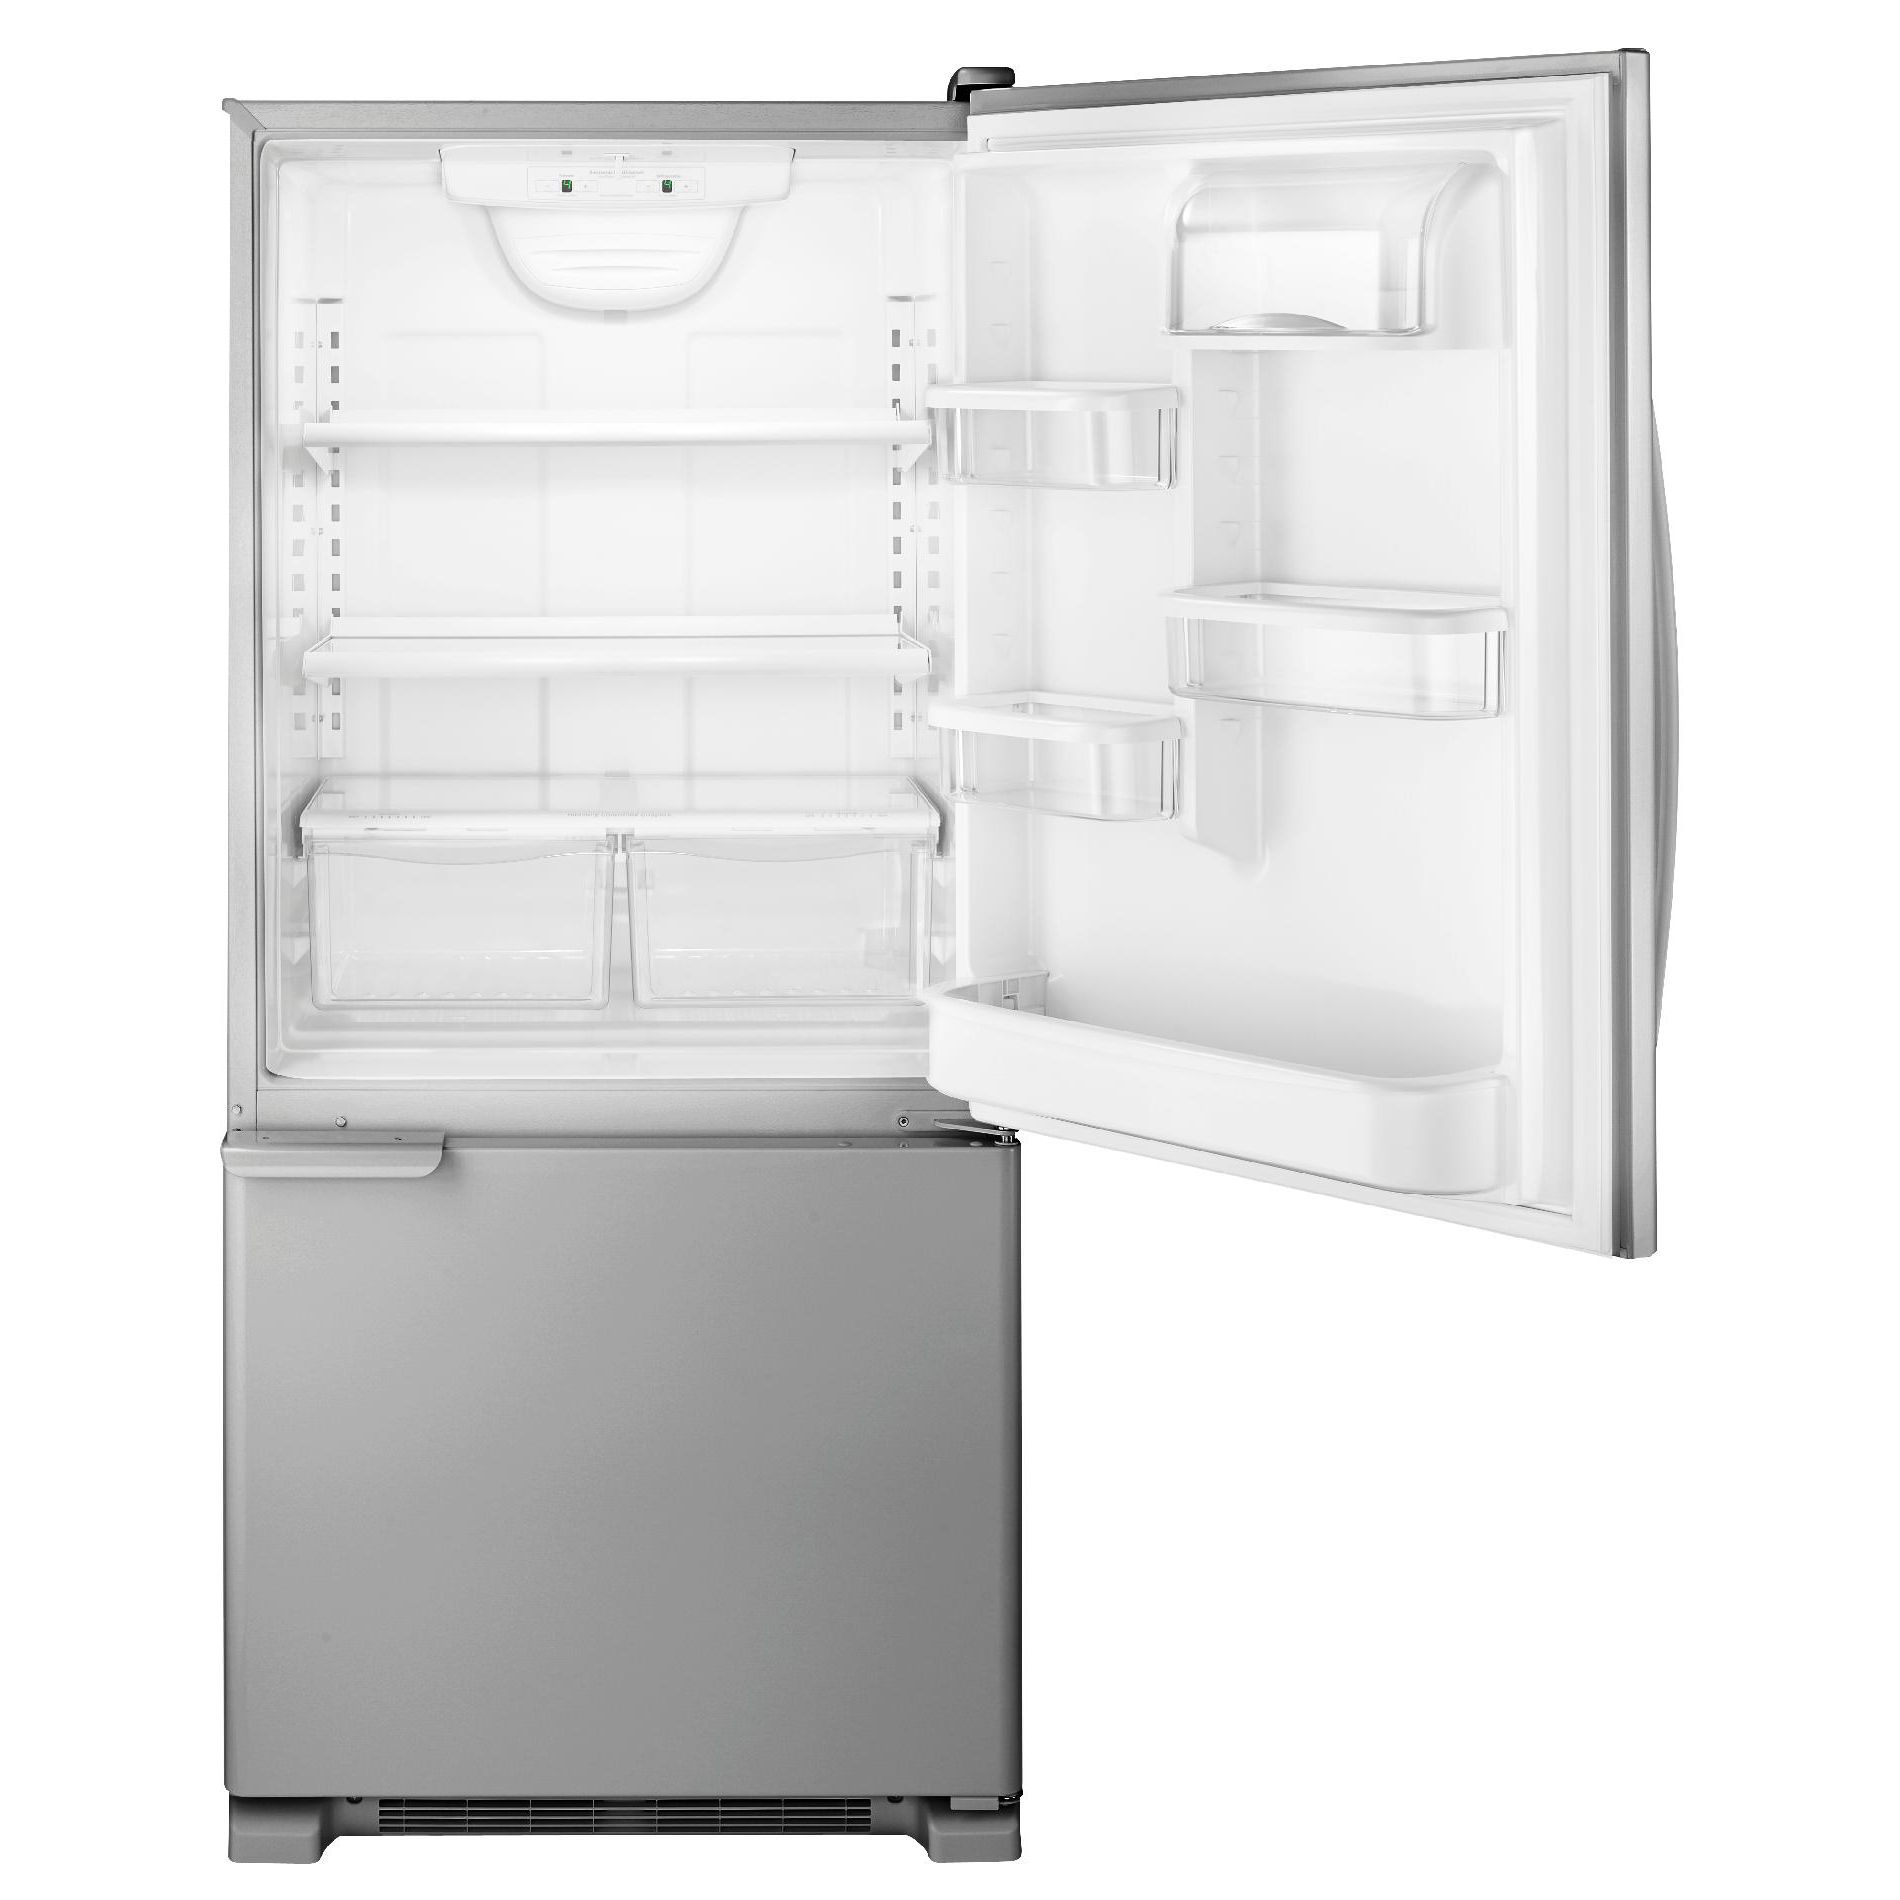 Kenmore Kenmore 69313 19 Cuft Refrigerator With Swing Freezer Door/Humidity  Controlled Crispers   Stainless